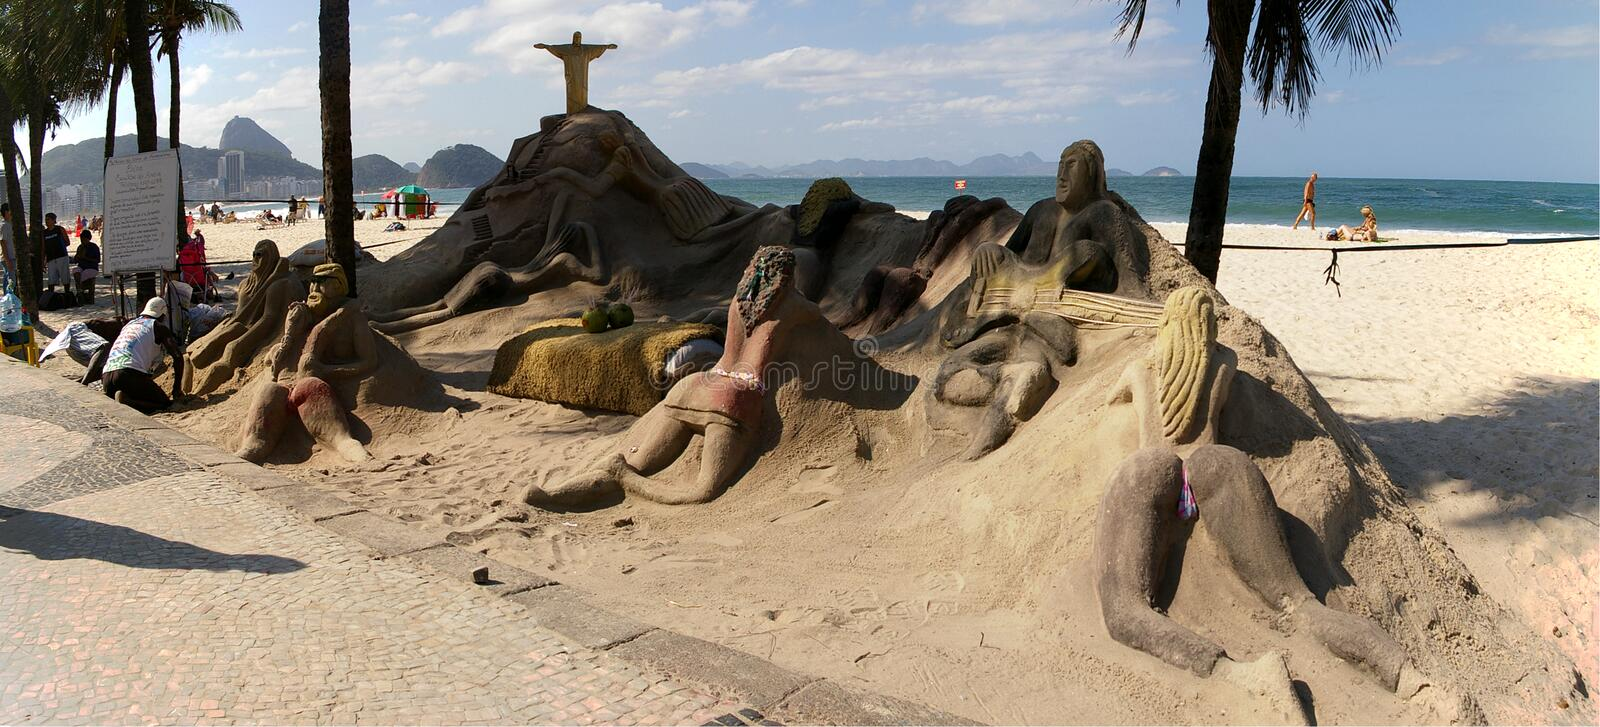 Sand sculptures on Copacabana beach stock image